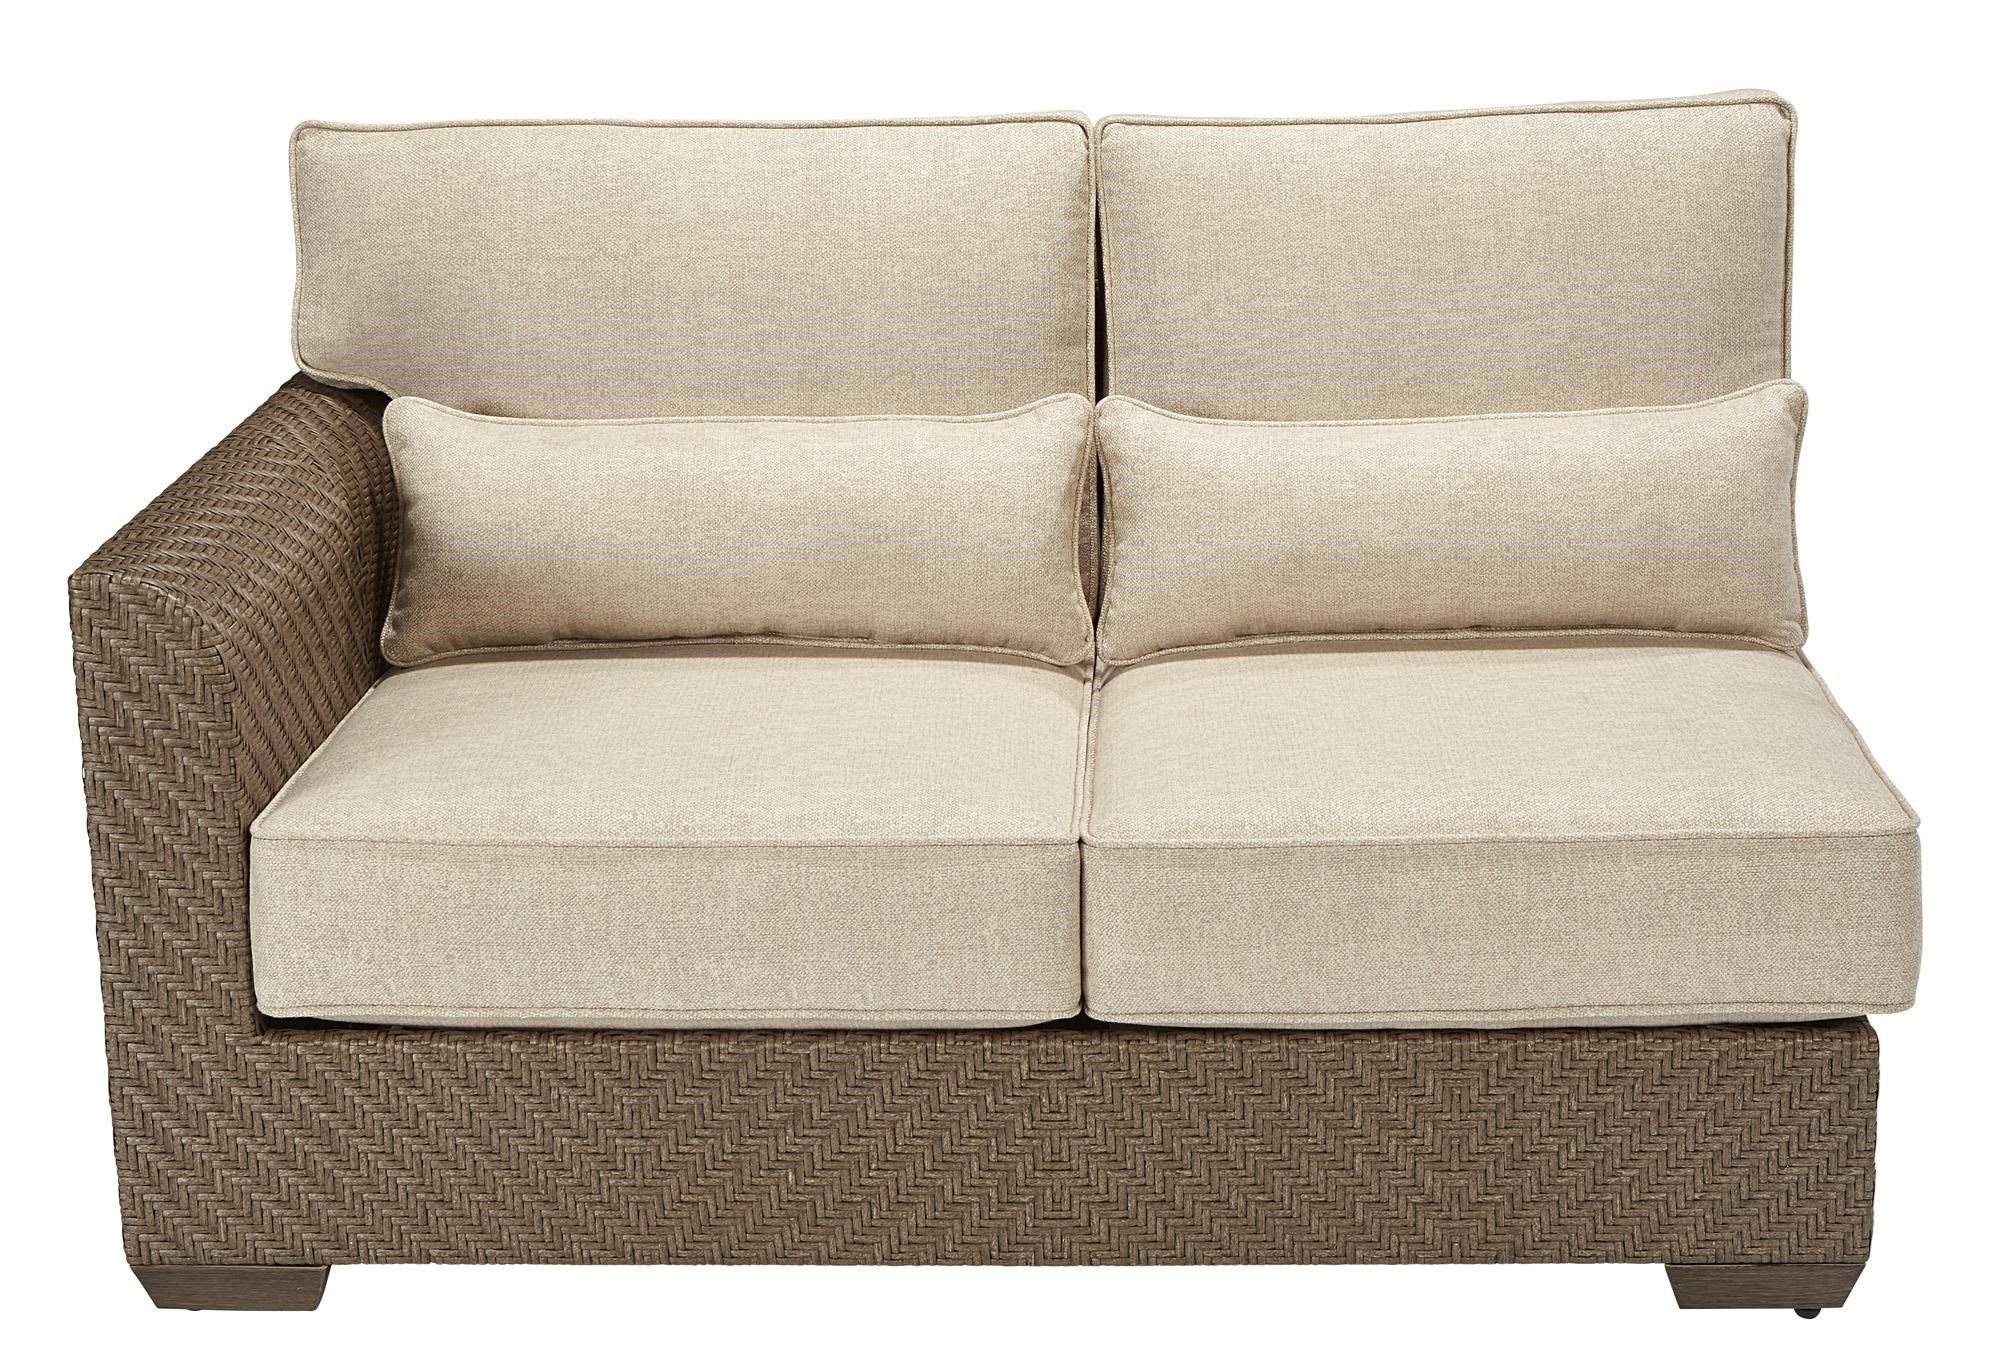 A.R.T. Furniture Inc 933-Arch Salvage Left Arm Facing Loveseat - Item Number: 533512-4124